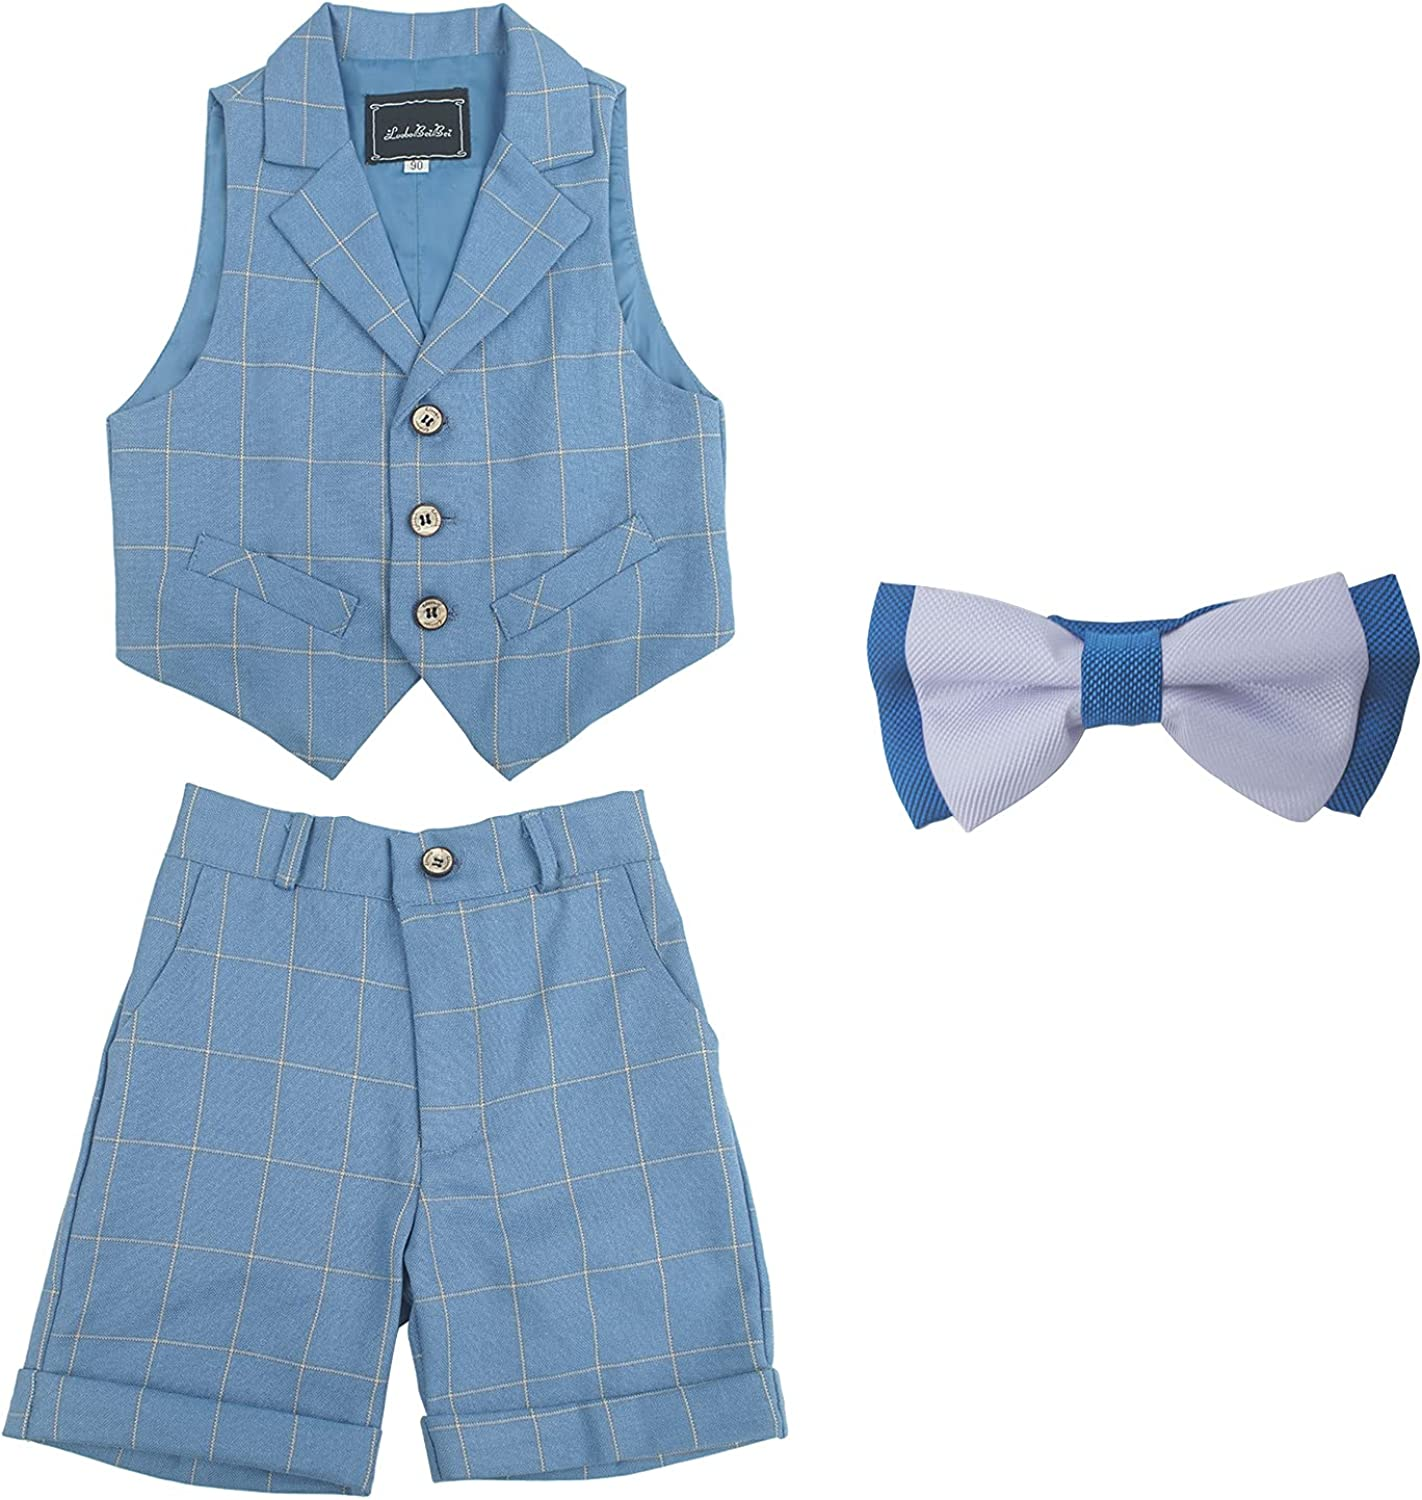 Happy Cherry Baby Boys Gentleman Outfits Suit with Bowtie Formal Vest Shorts Pant Set